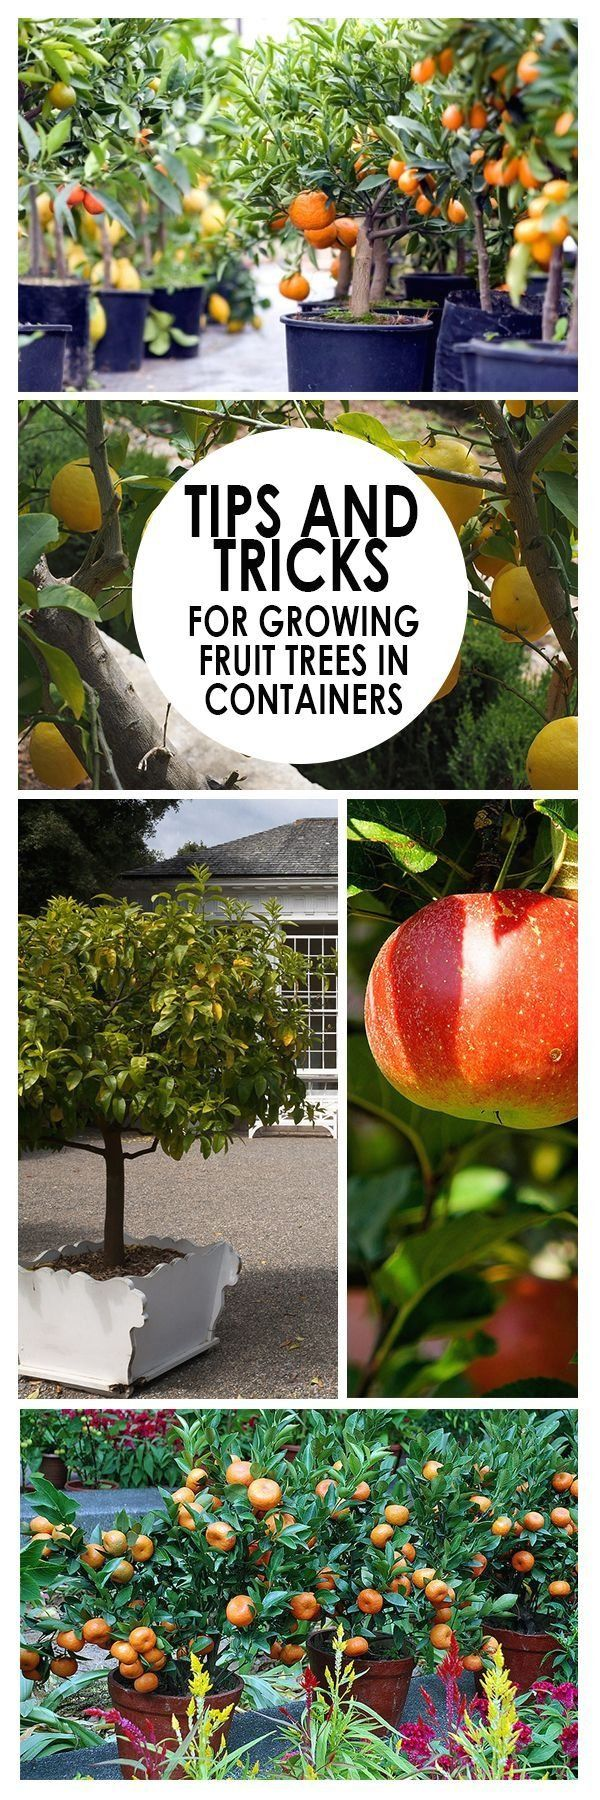 Tips And Tricks For Growing Fruit Trees In Containers Bees And Roses 1000 Fruit Trees In Containers Growing Fruit Growing Fruit Trees